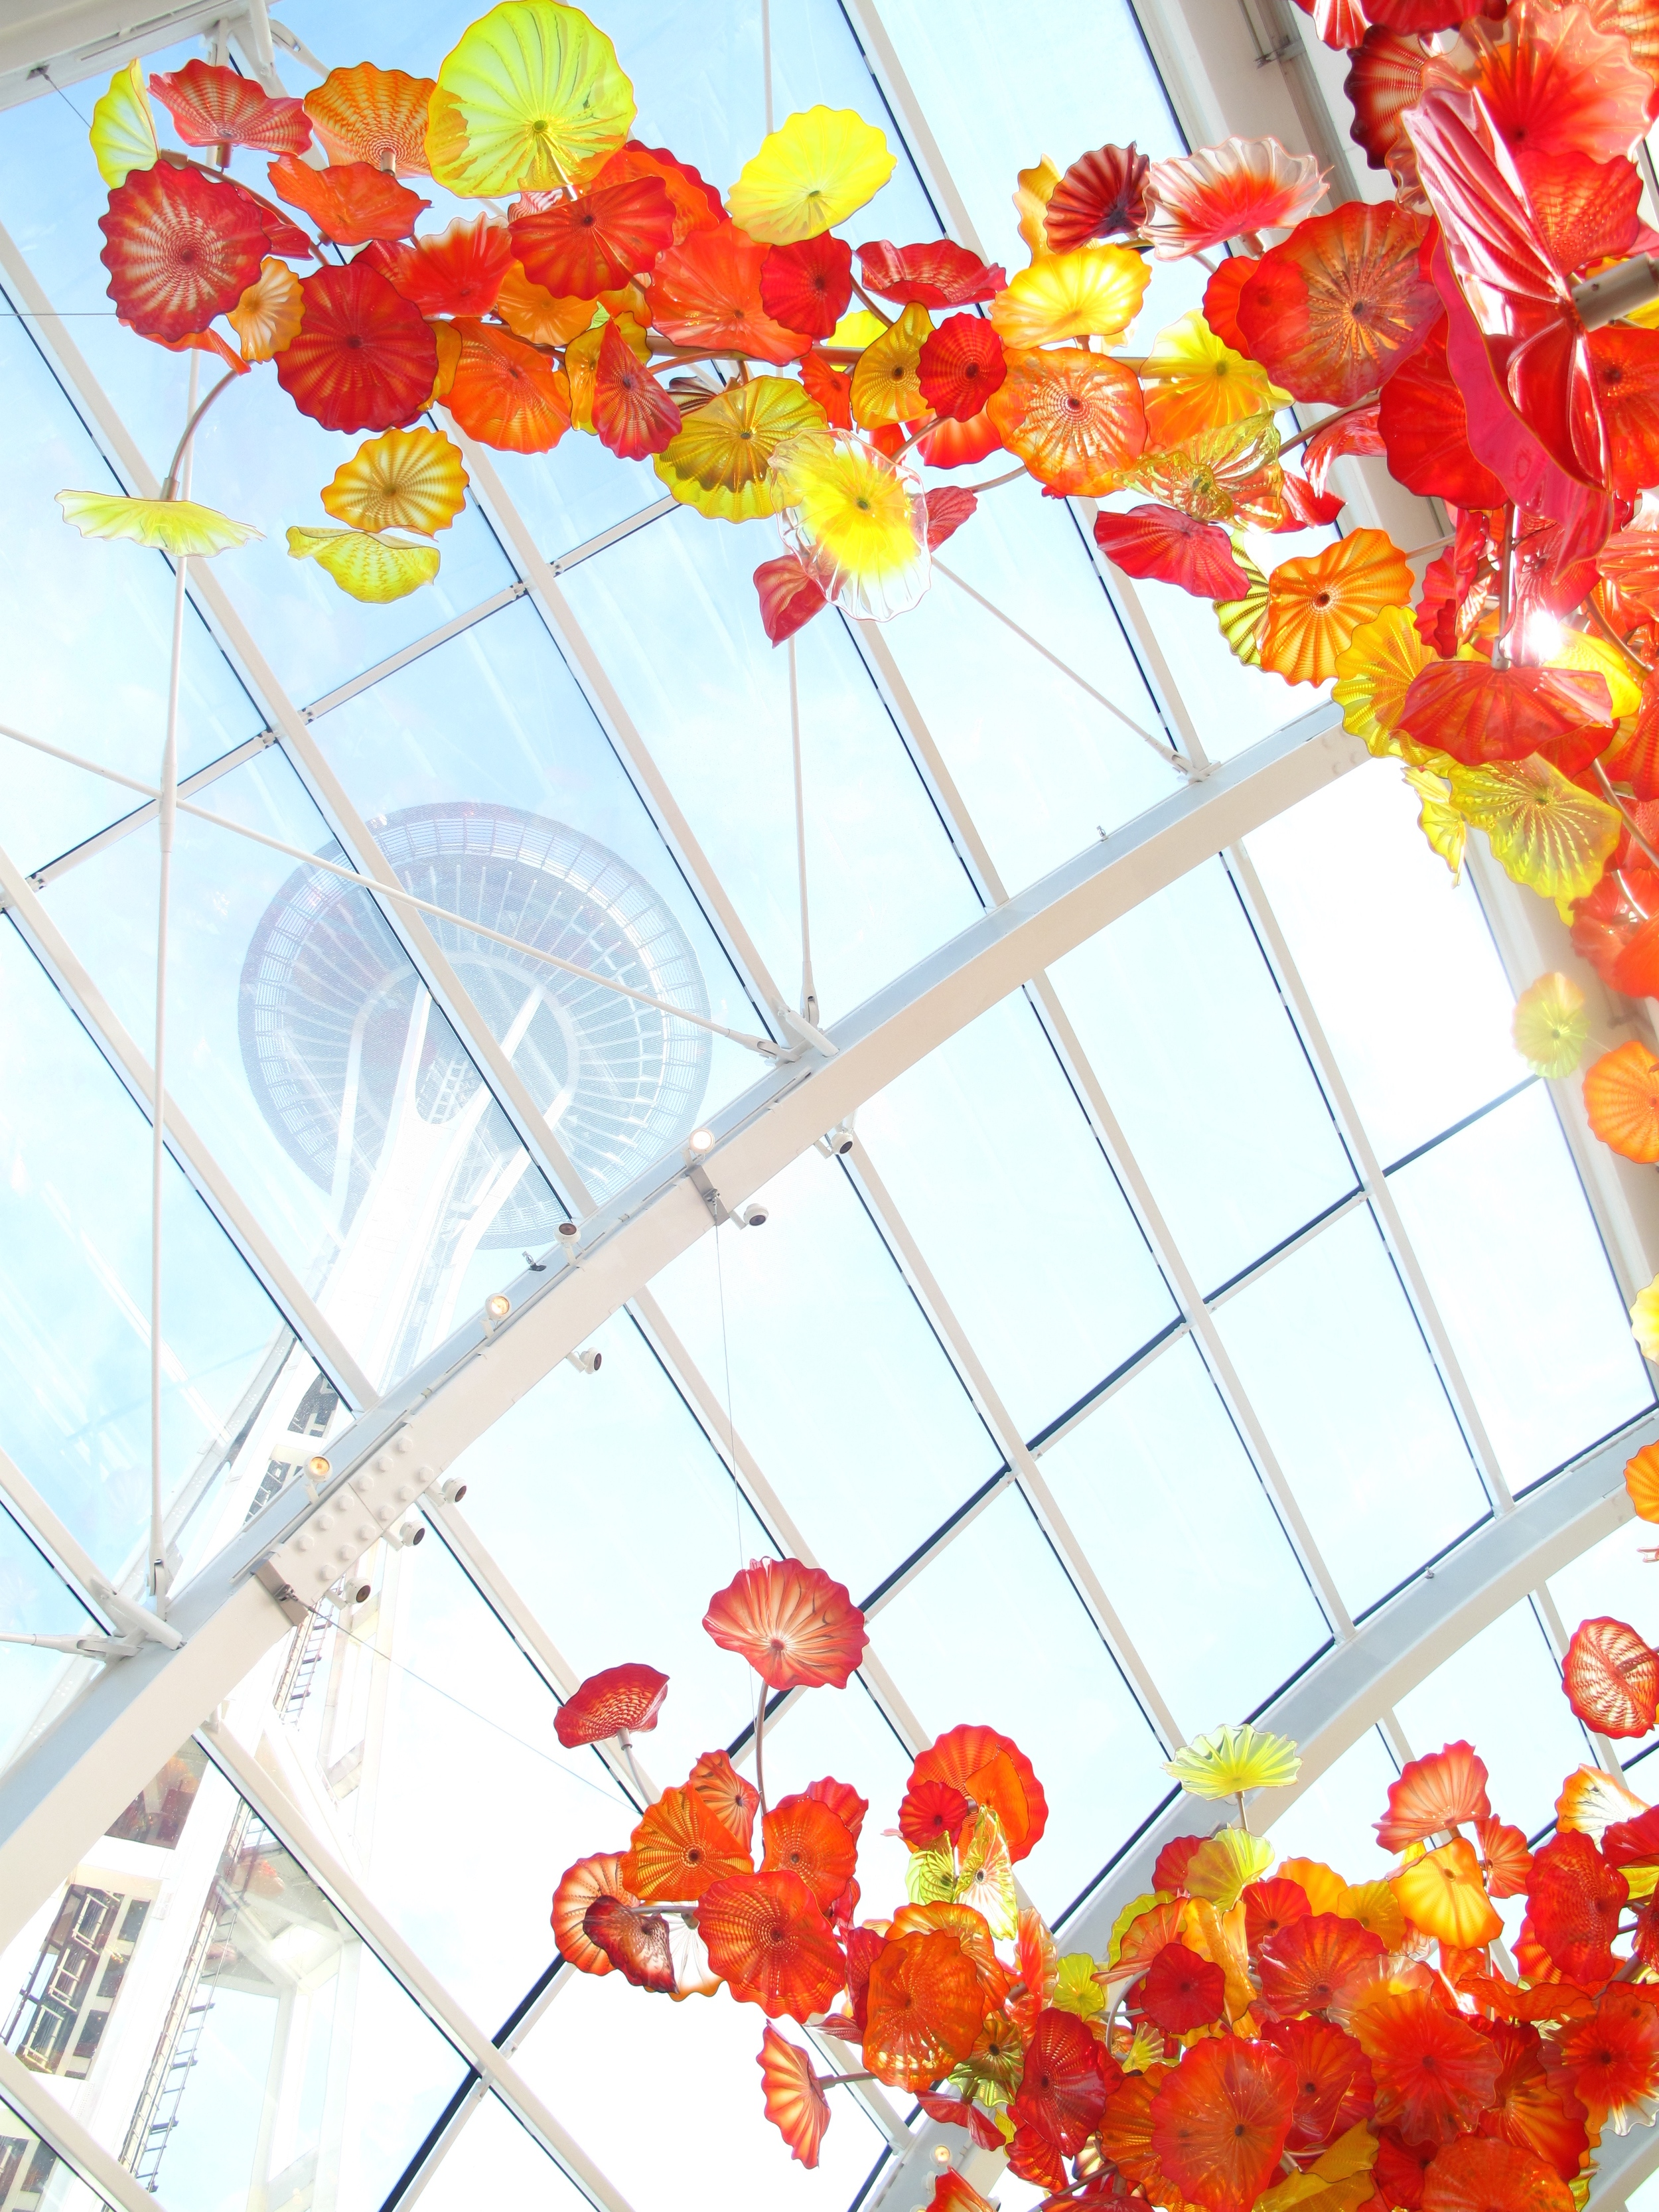 Vie of the Space Needle from Chihuly Museum, under the beautiful glass flowers.